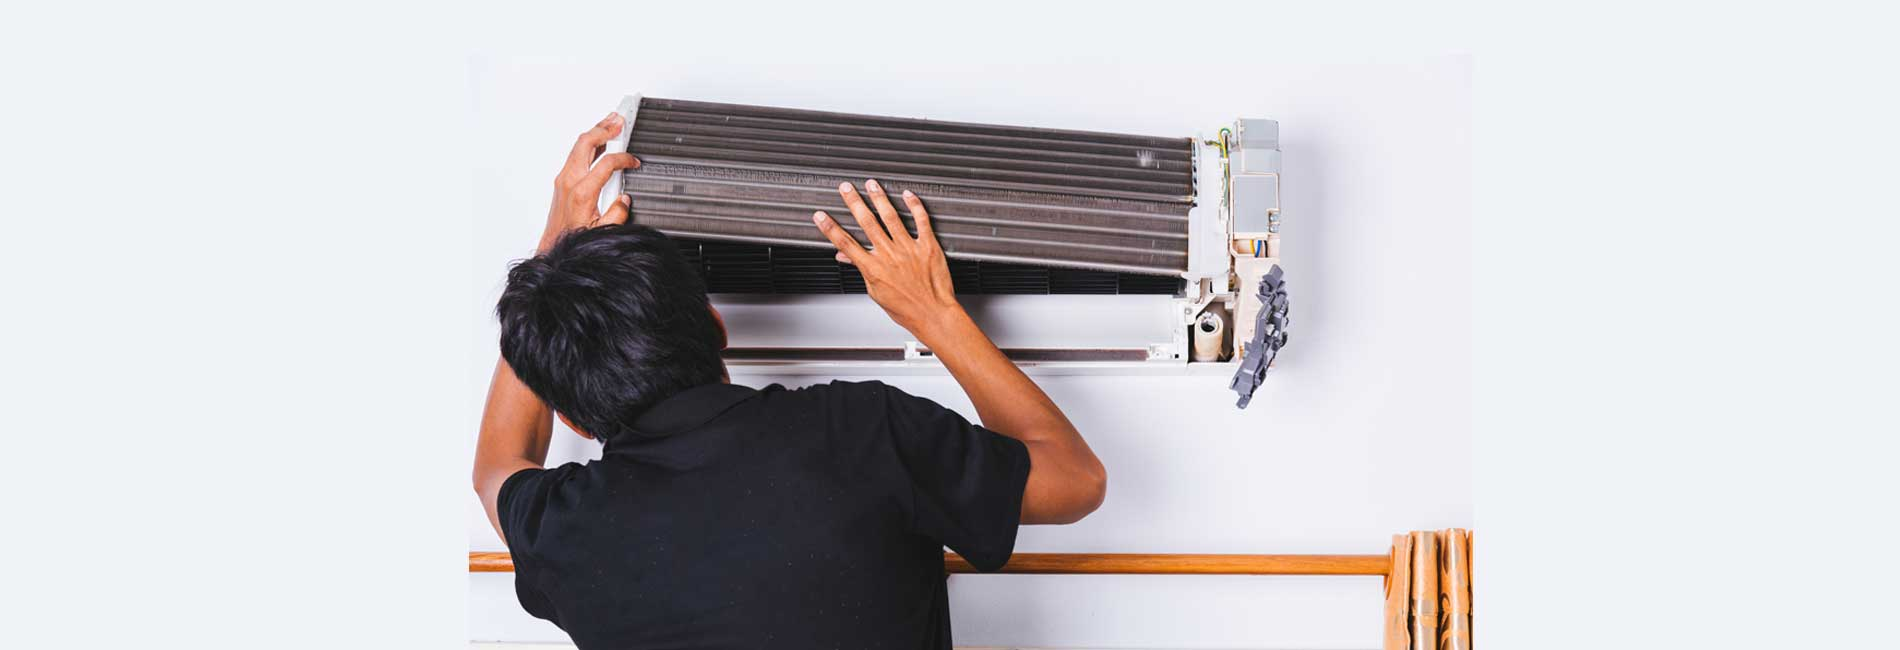 Whirlpool AC Uninstallation and Installation in Sunnambu kolathur